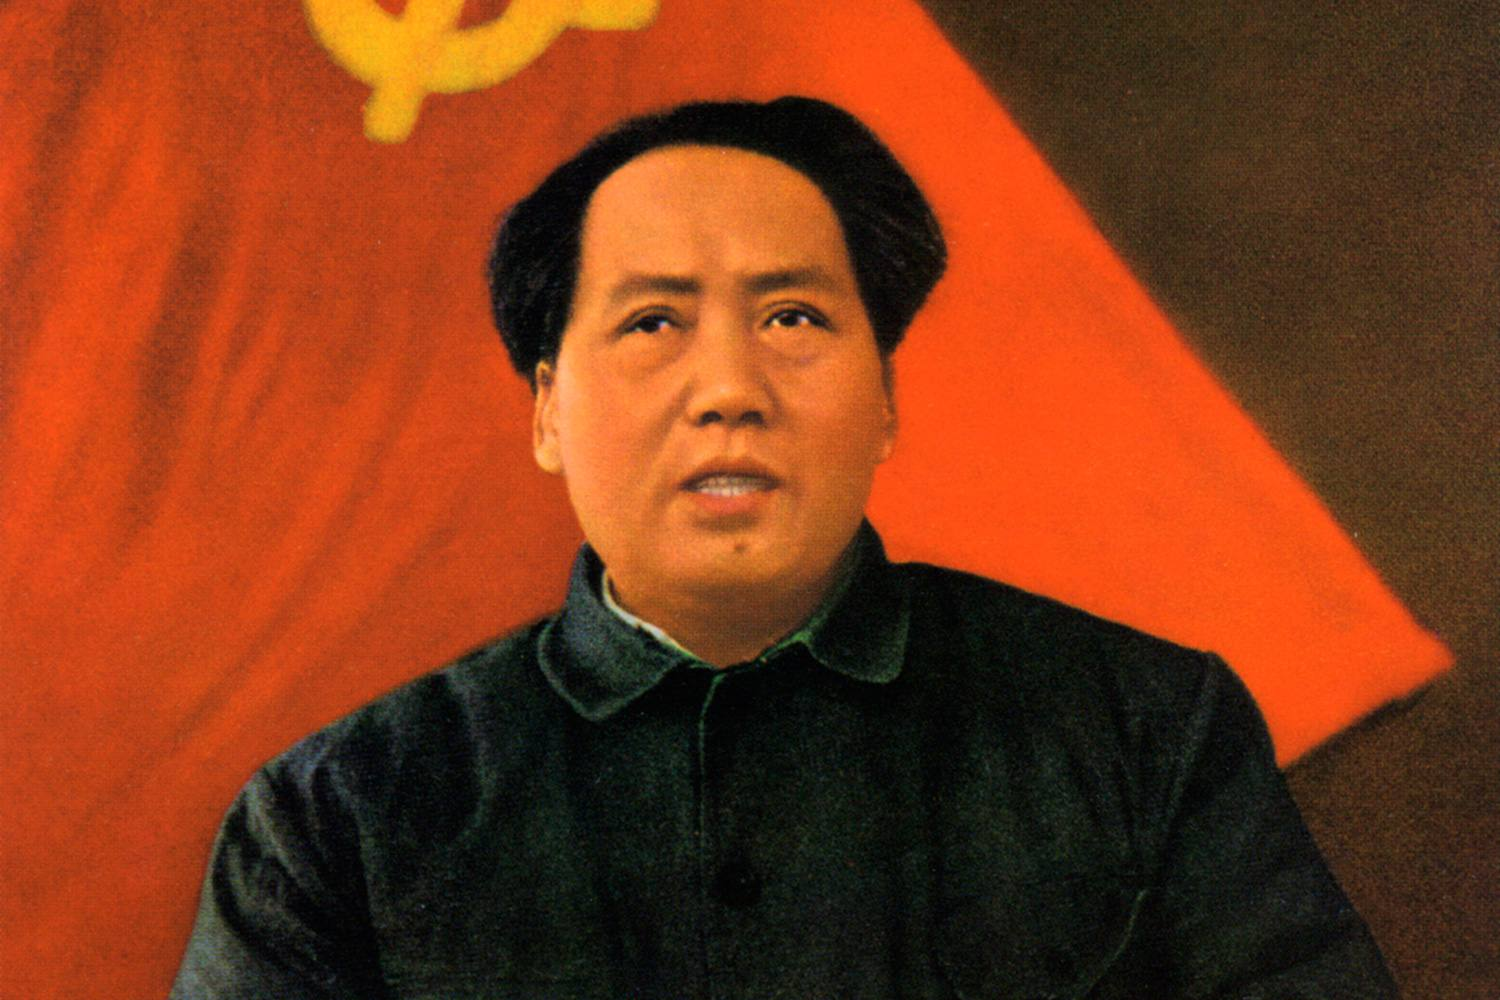 Mao Tse-tung led the Red Army on its epic Long March and overthrew the Nationalist Chinese dictator Chiang Kai-Shek in 1949